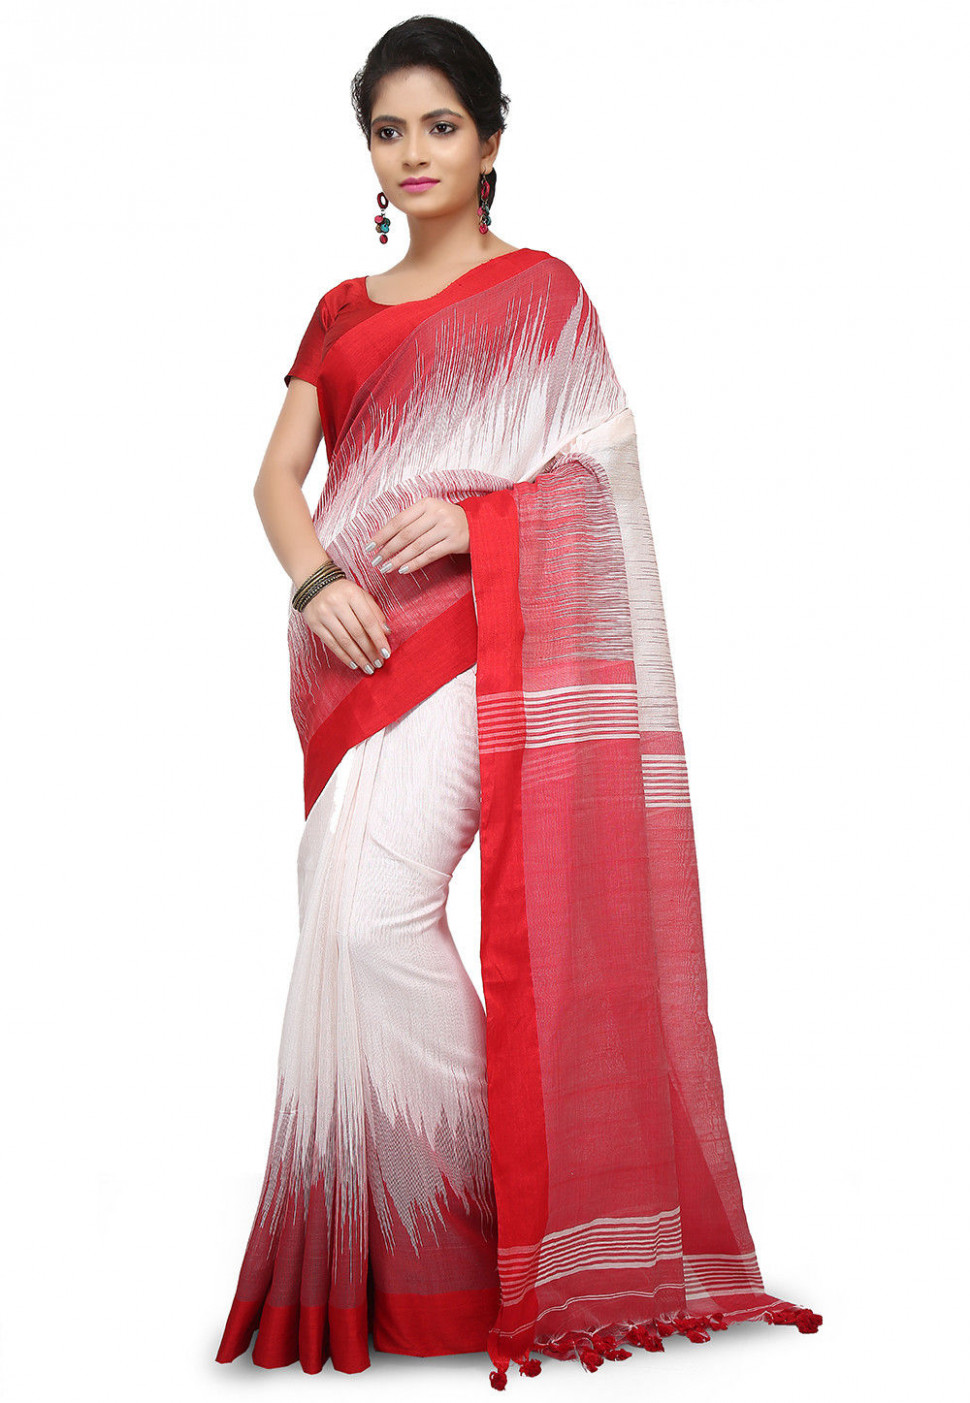 Handloom Cotton Silk Saree in White and Red : SCXA801